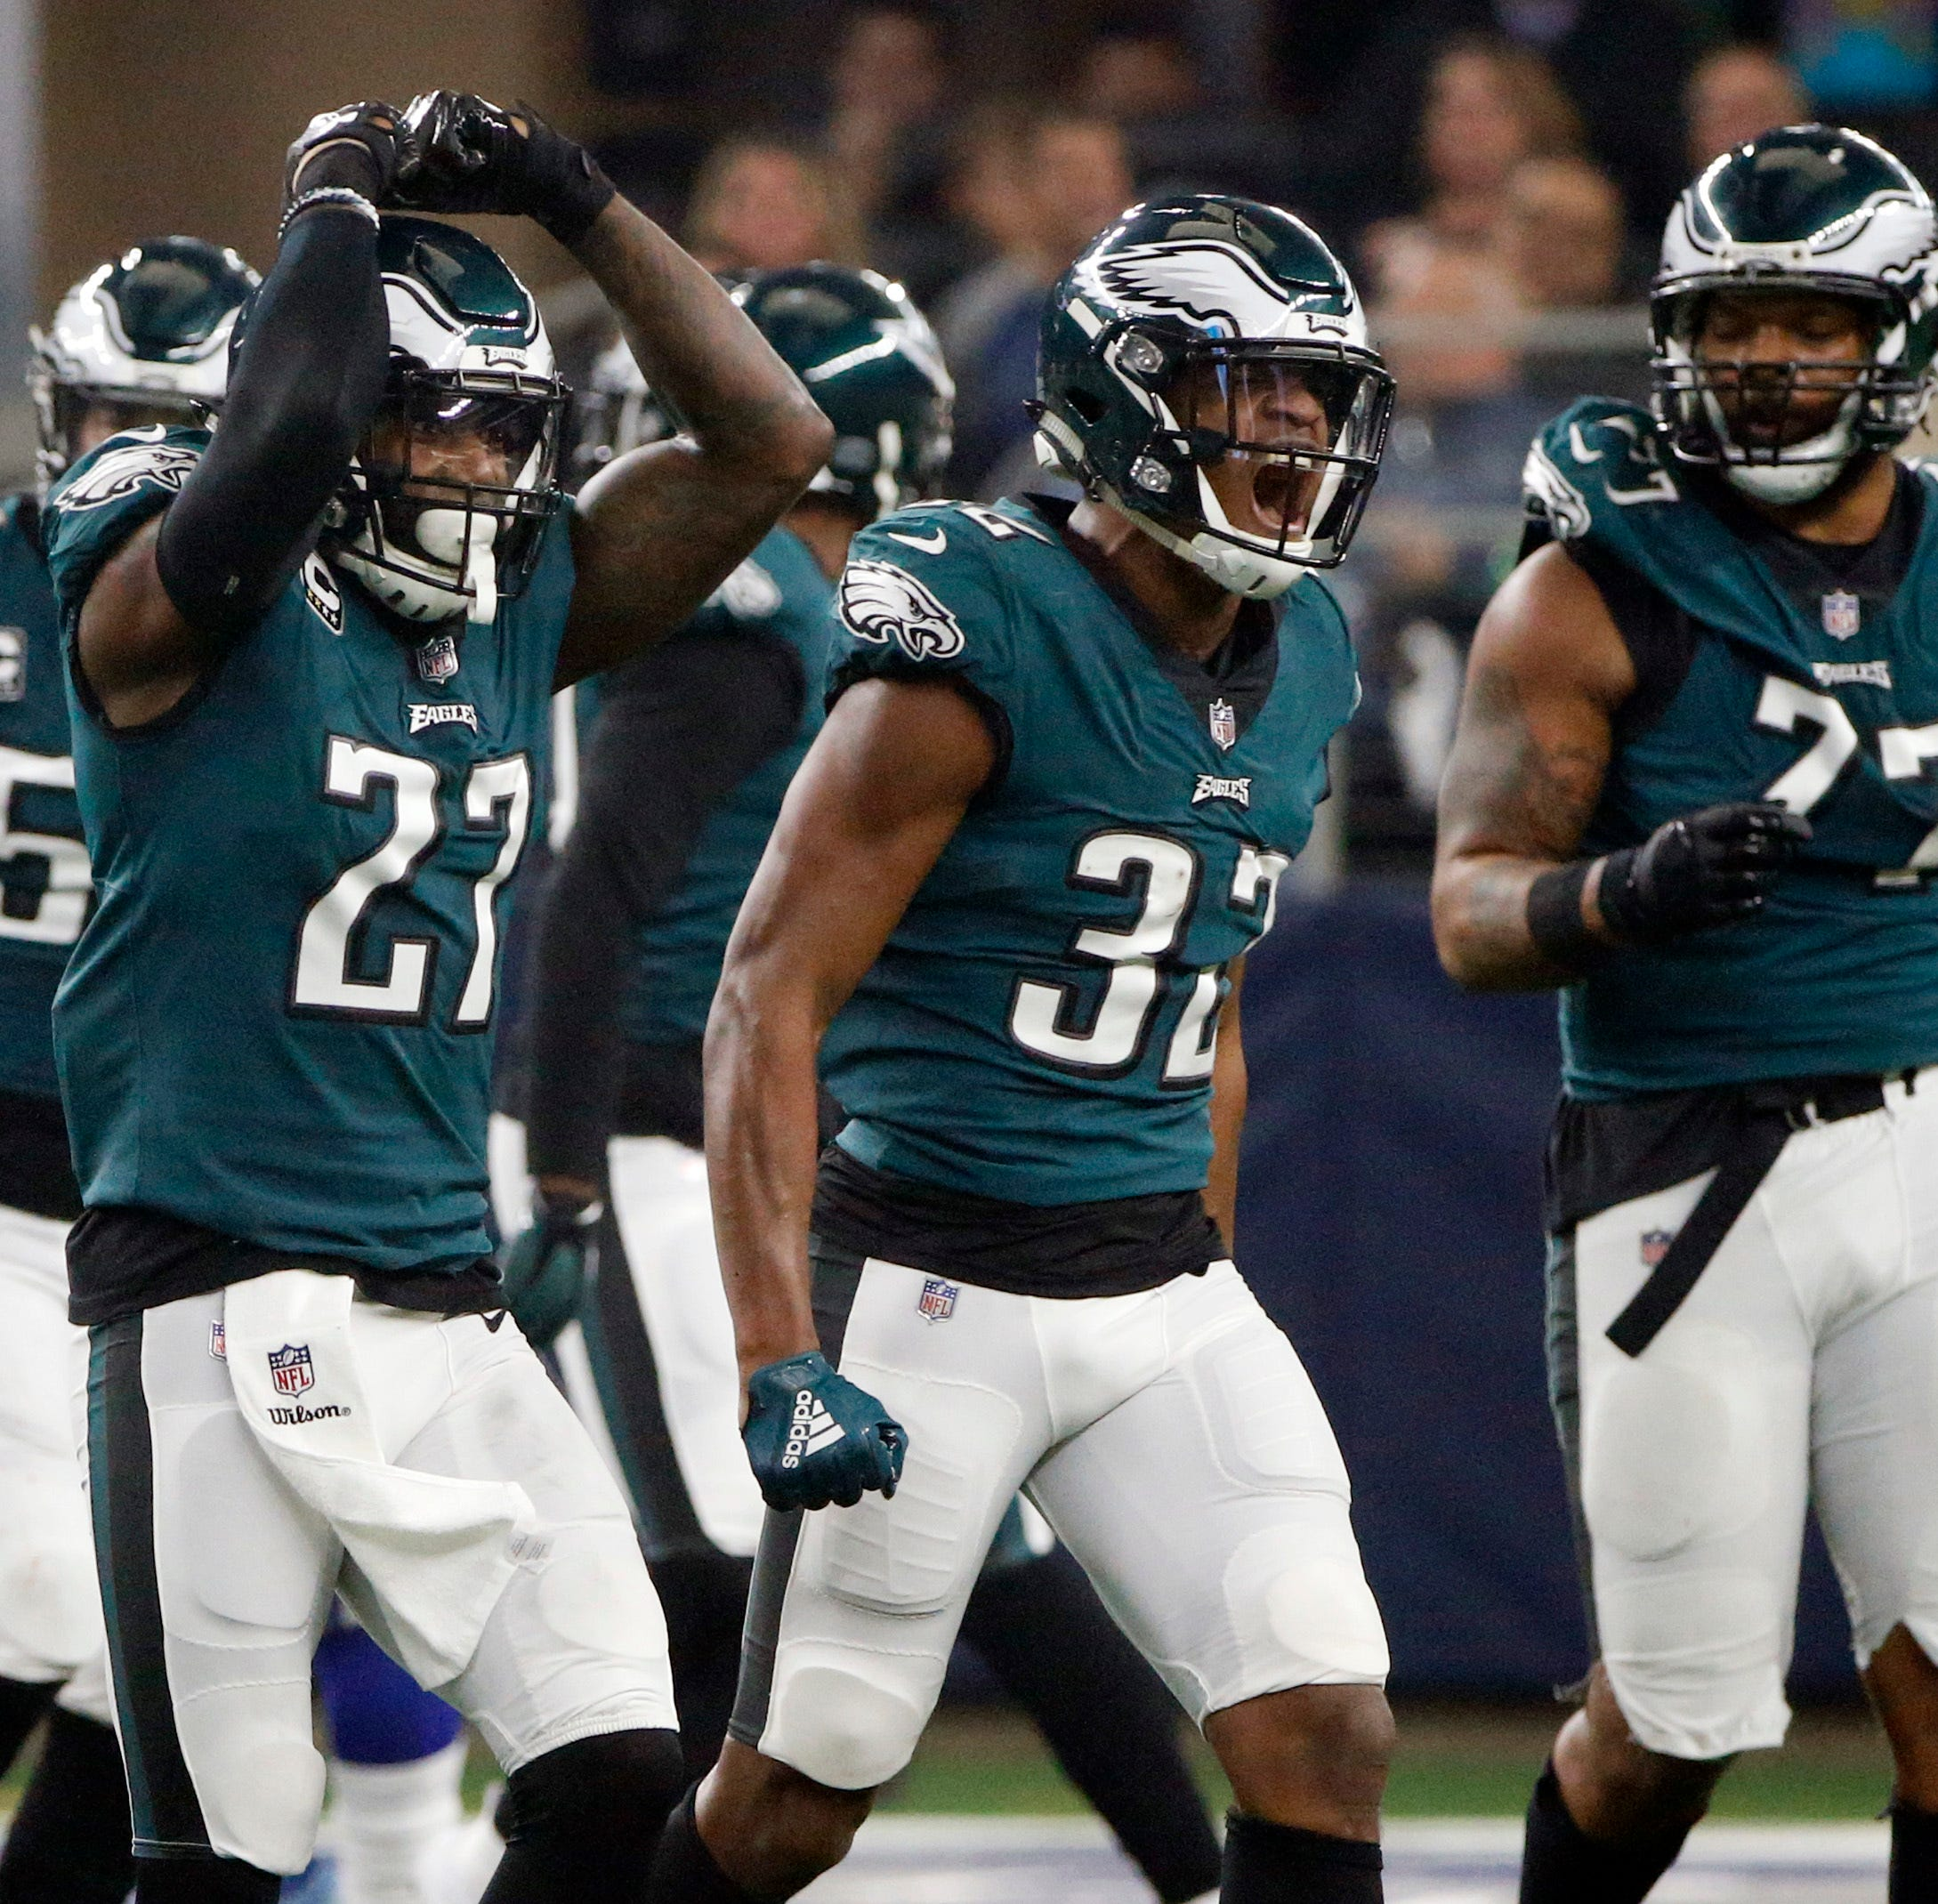 Eagles hanging in with Cowboys despite being outplayed, losing 3 more players to injury